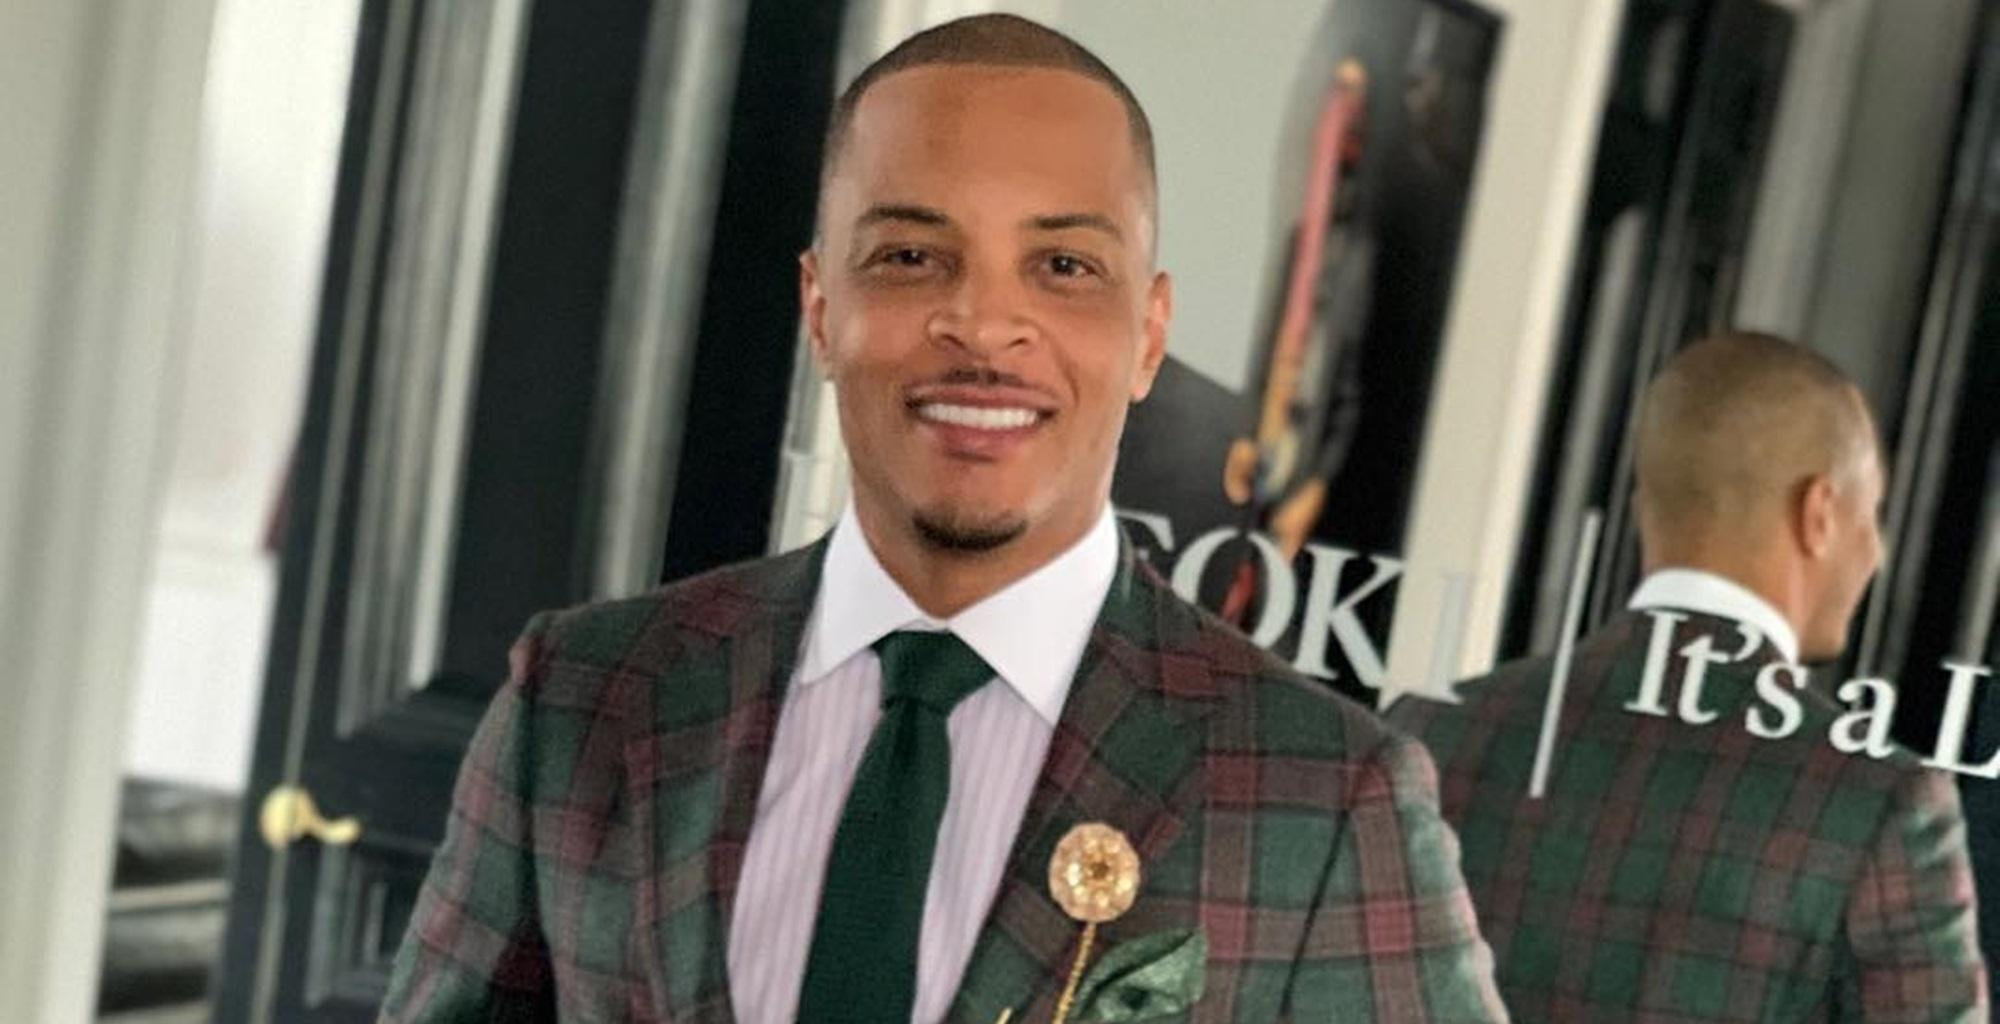 T.I. Destroys Donald Trump Backer Candace Owens In Wild Video Where He Asked, 'When Was America Great?'